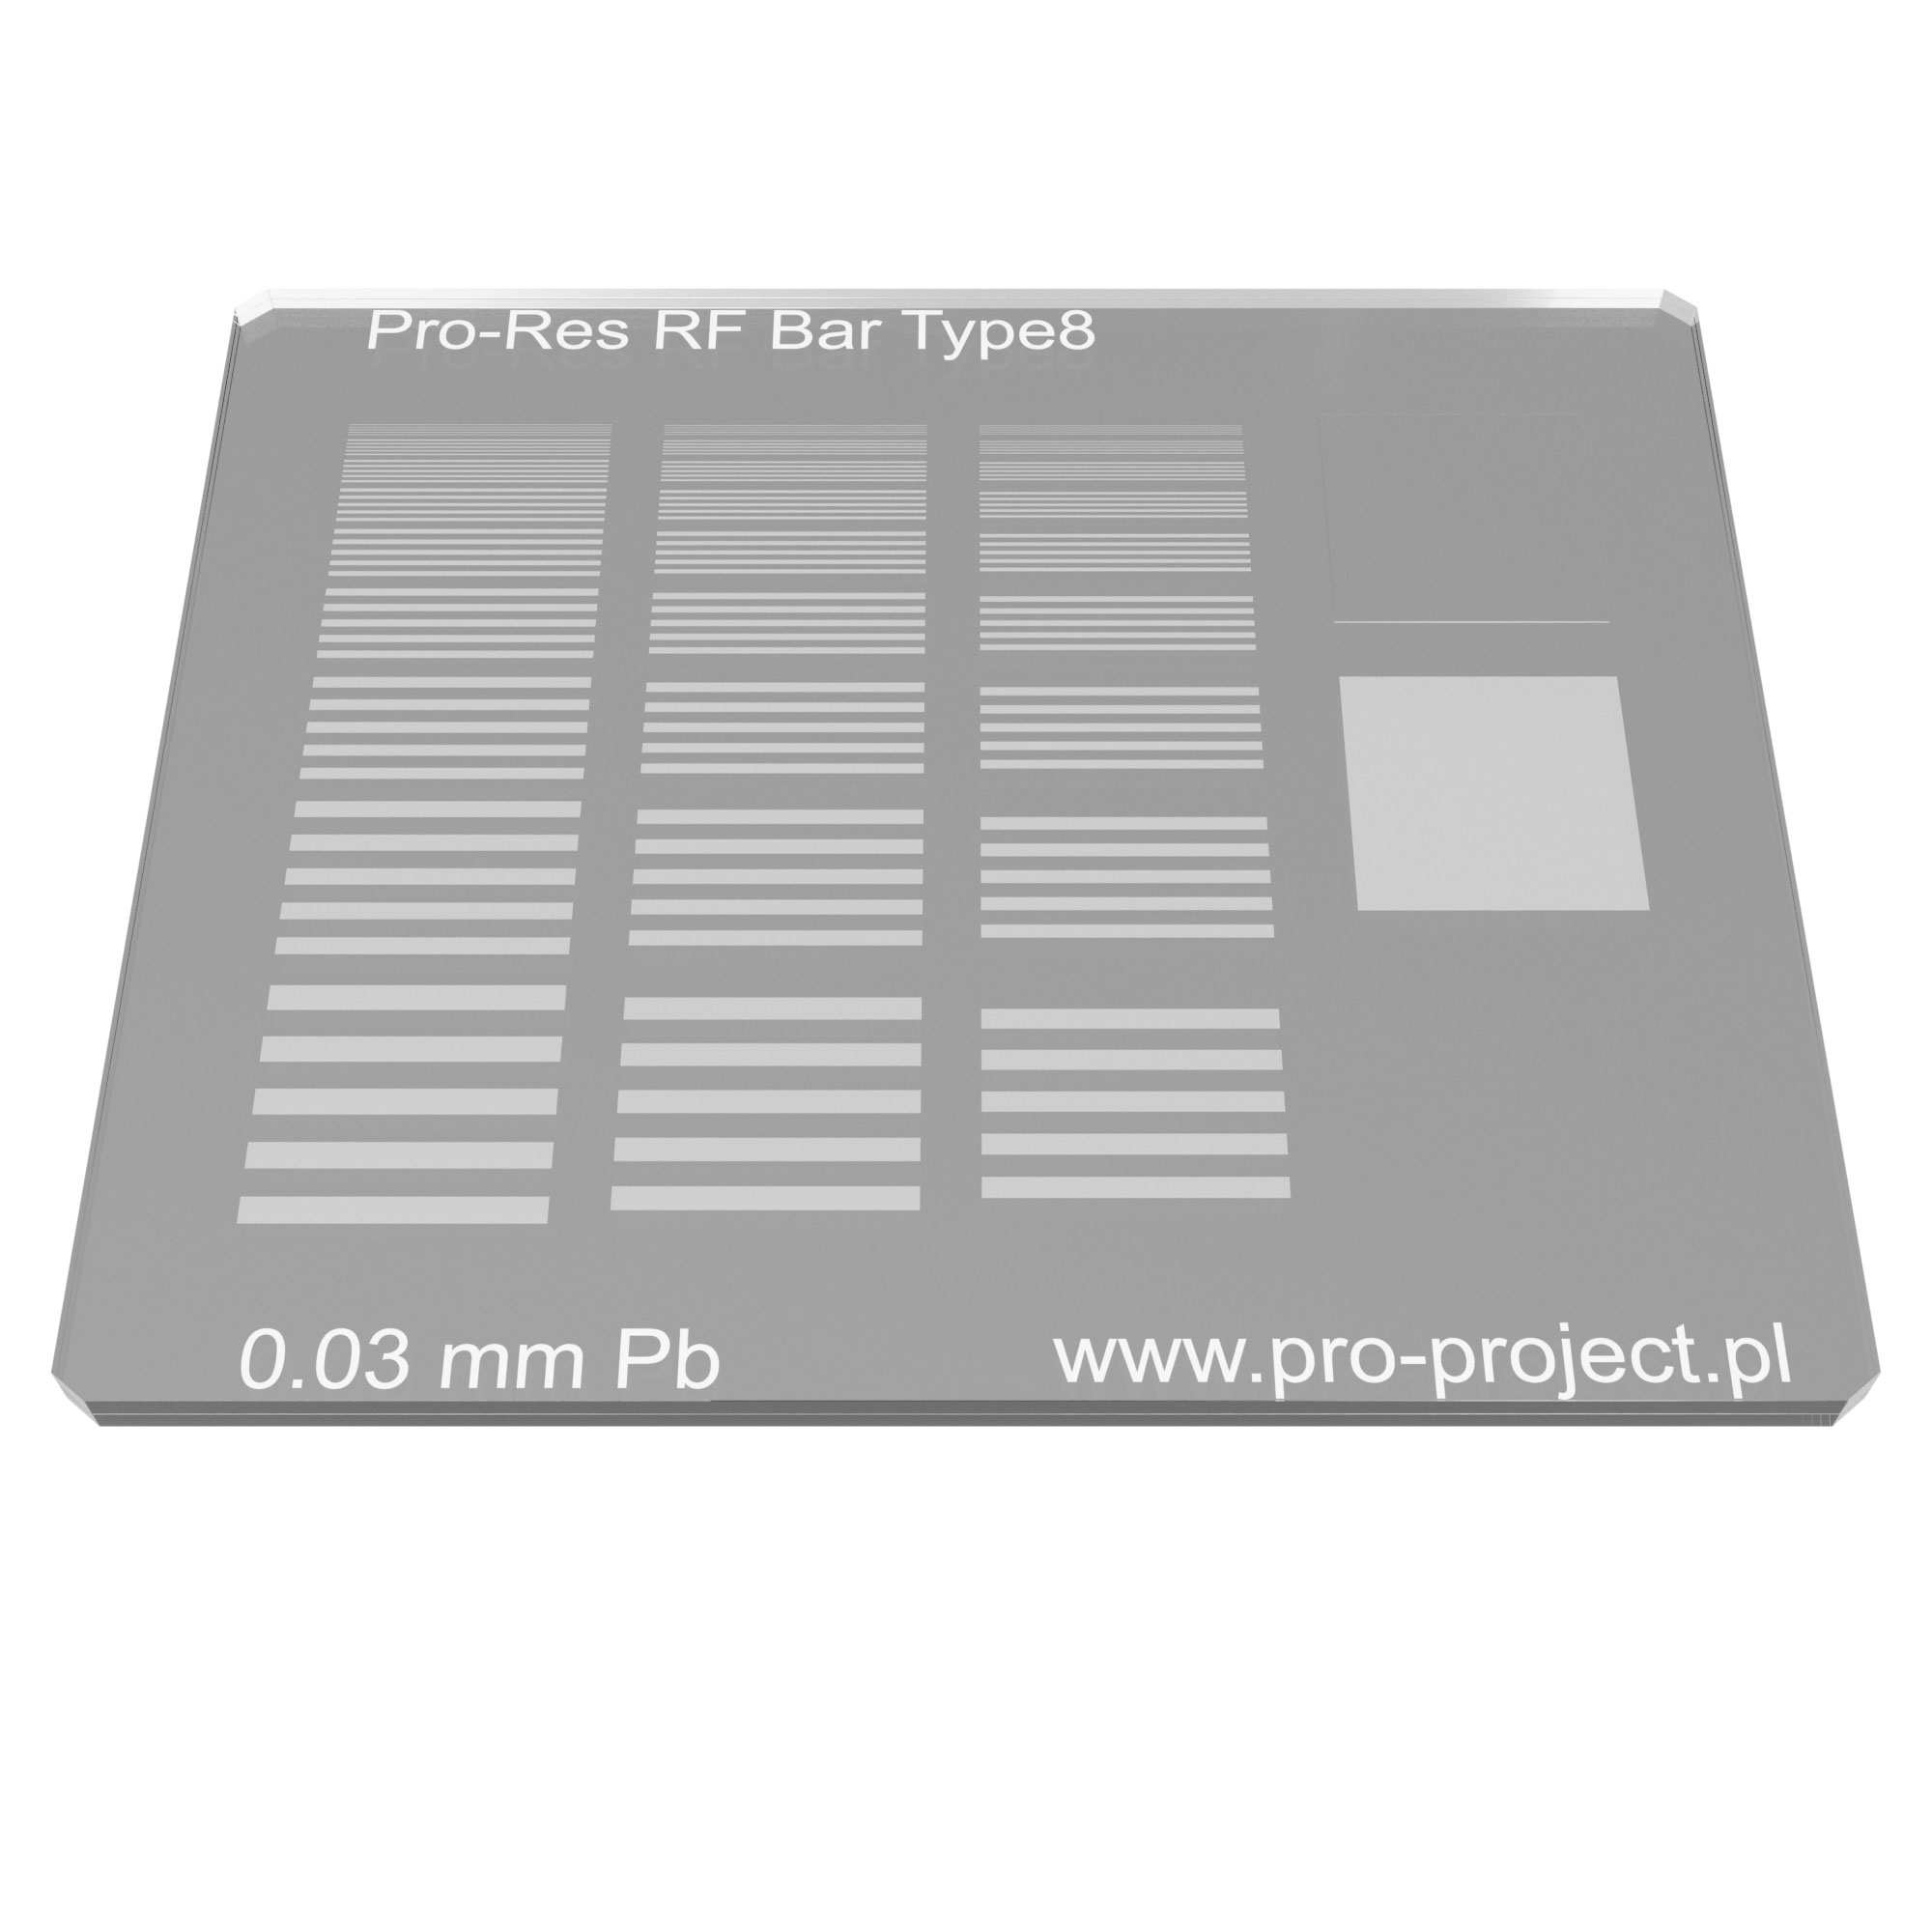 Pro-Res RF BarType 8